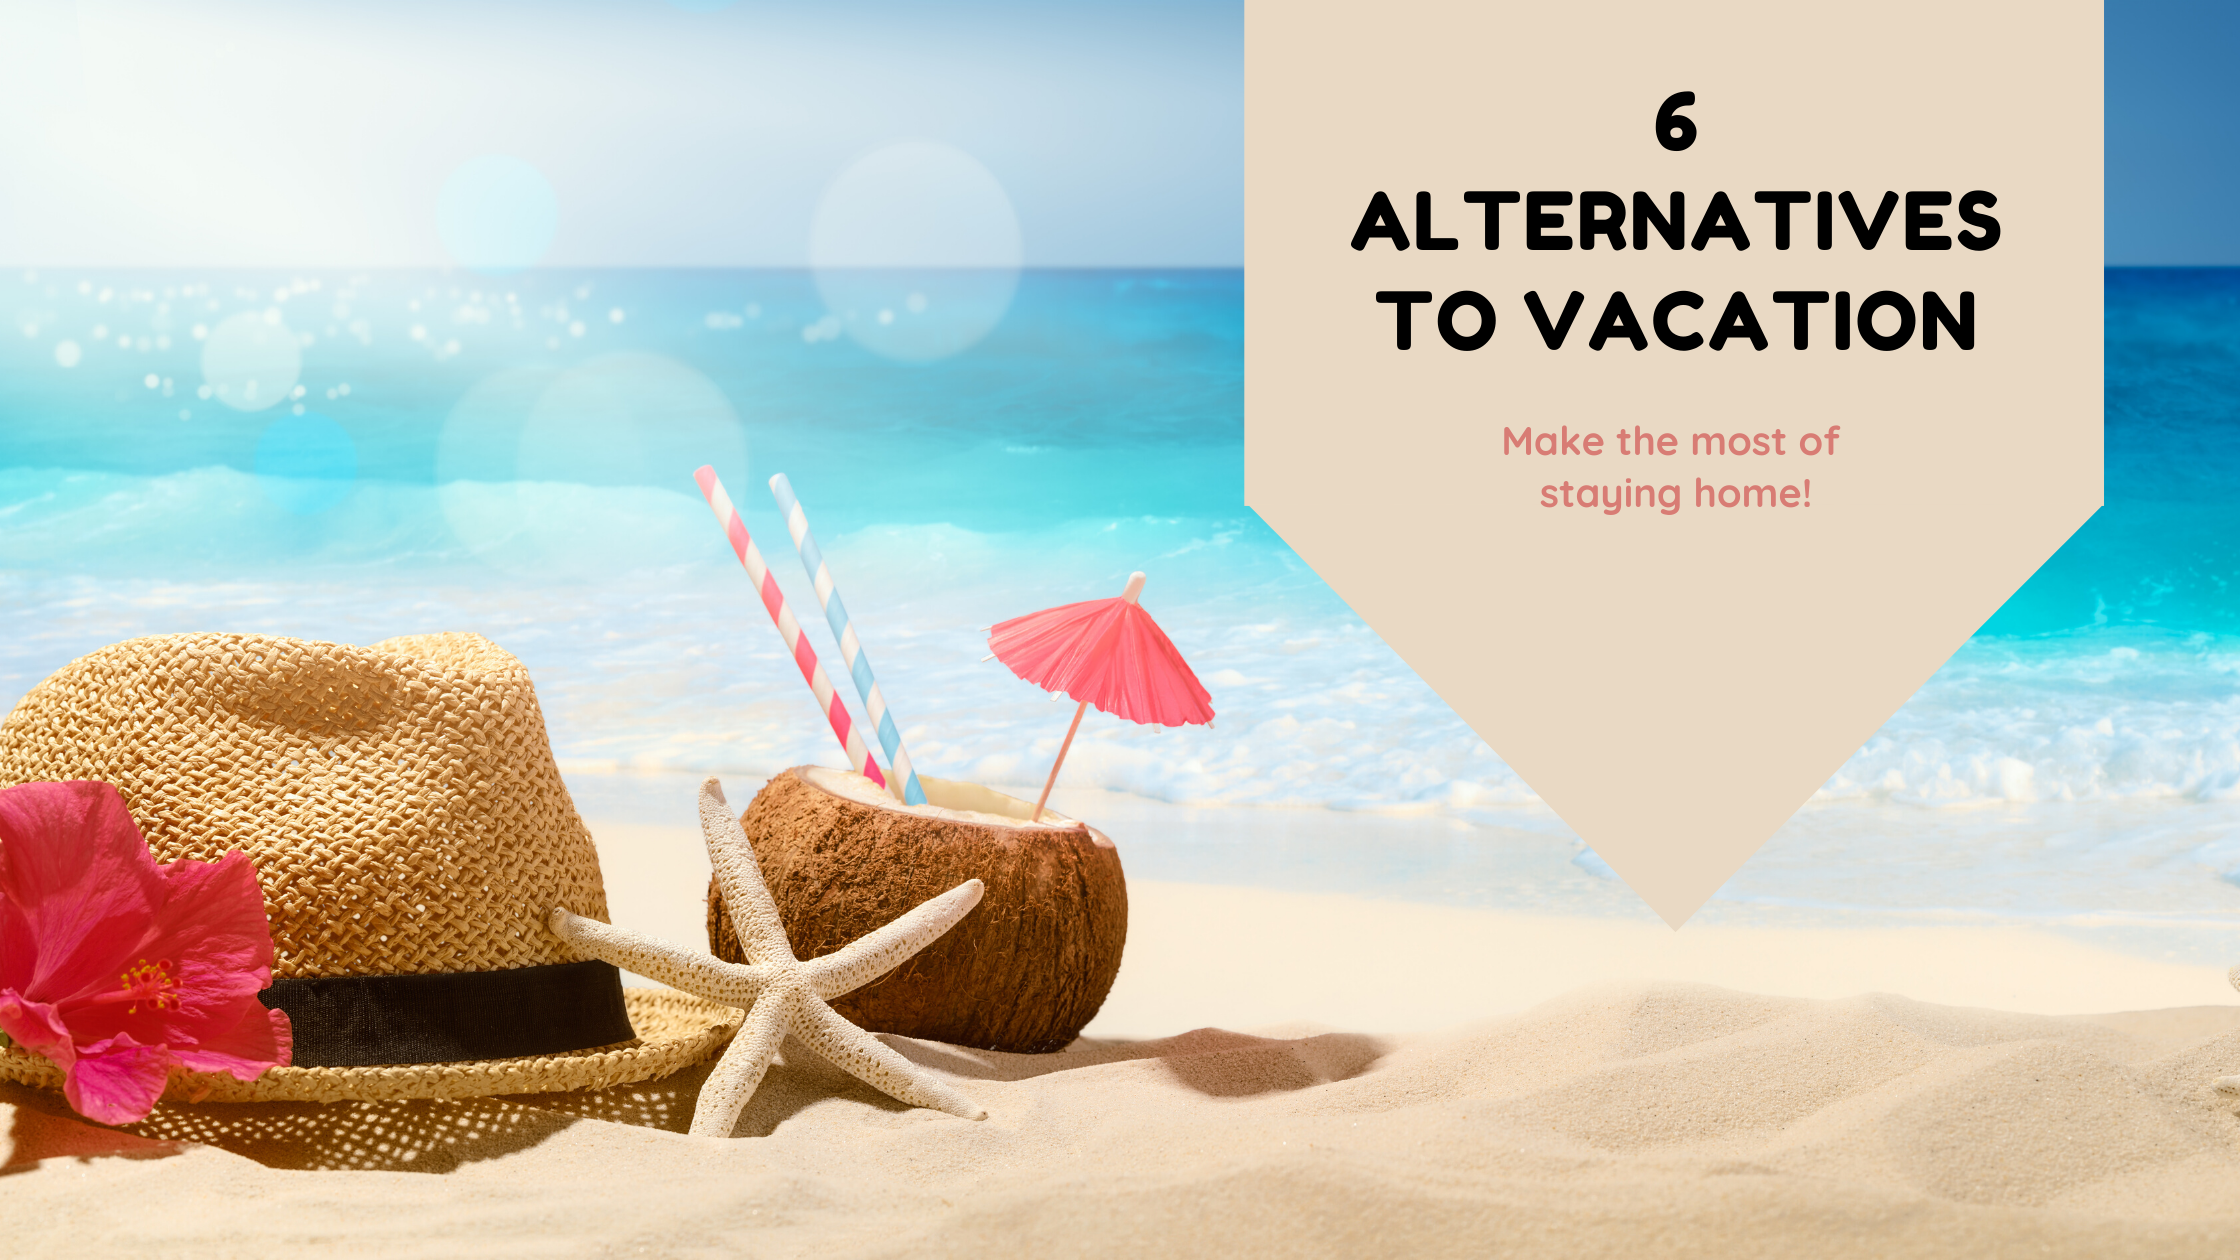 6 Alternative Ideas to Vacation This Year